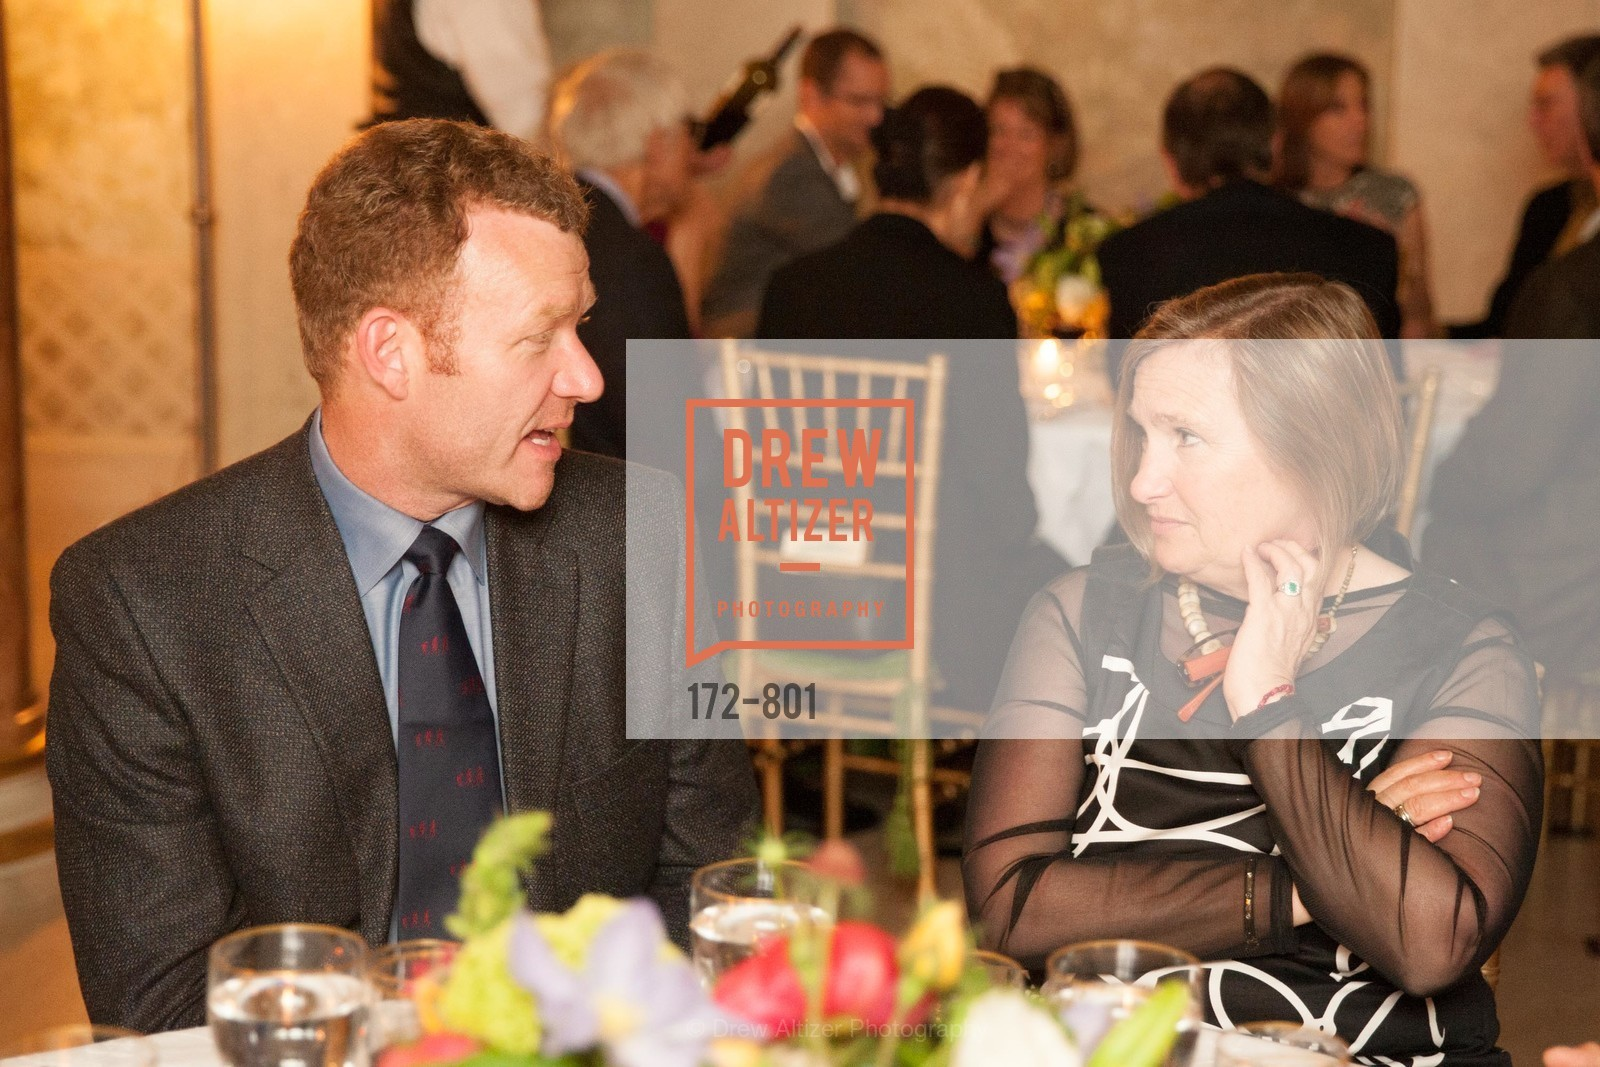 Martin Muller, GETTY Hosts Leakey Foundation Dinner, US, April 24th, 2015,Drew Altizer, Drew Altizer Photography, full-service agency, private events, San Francisco photographer, photographer california